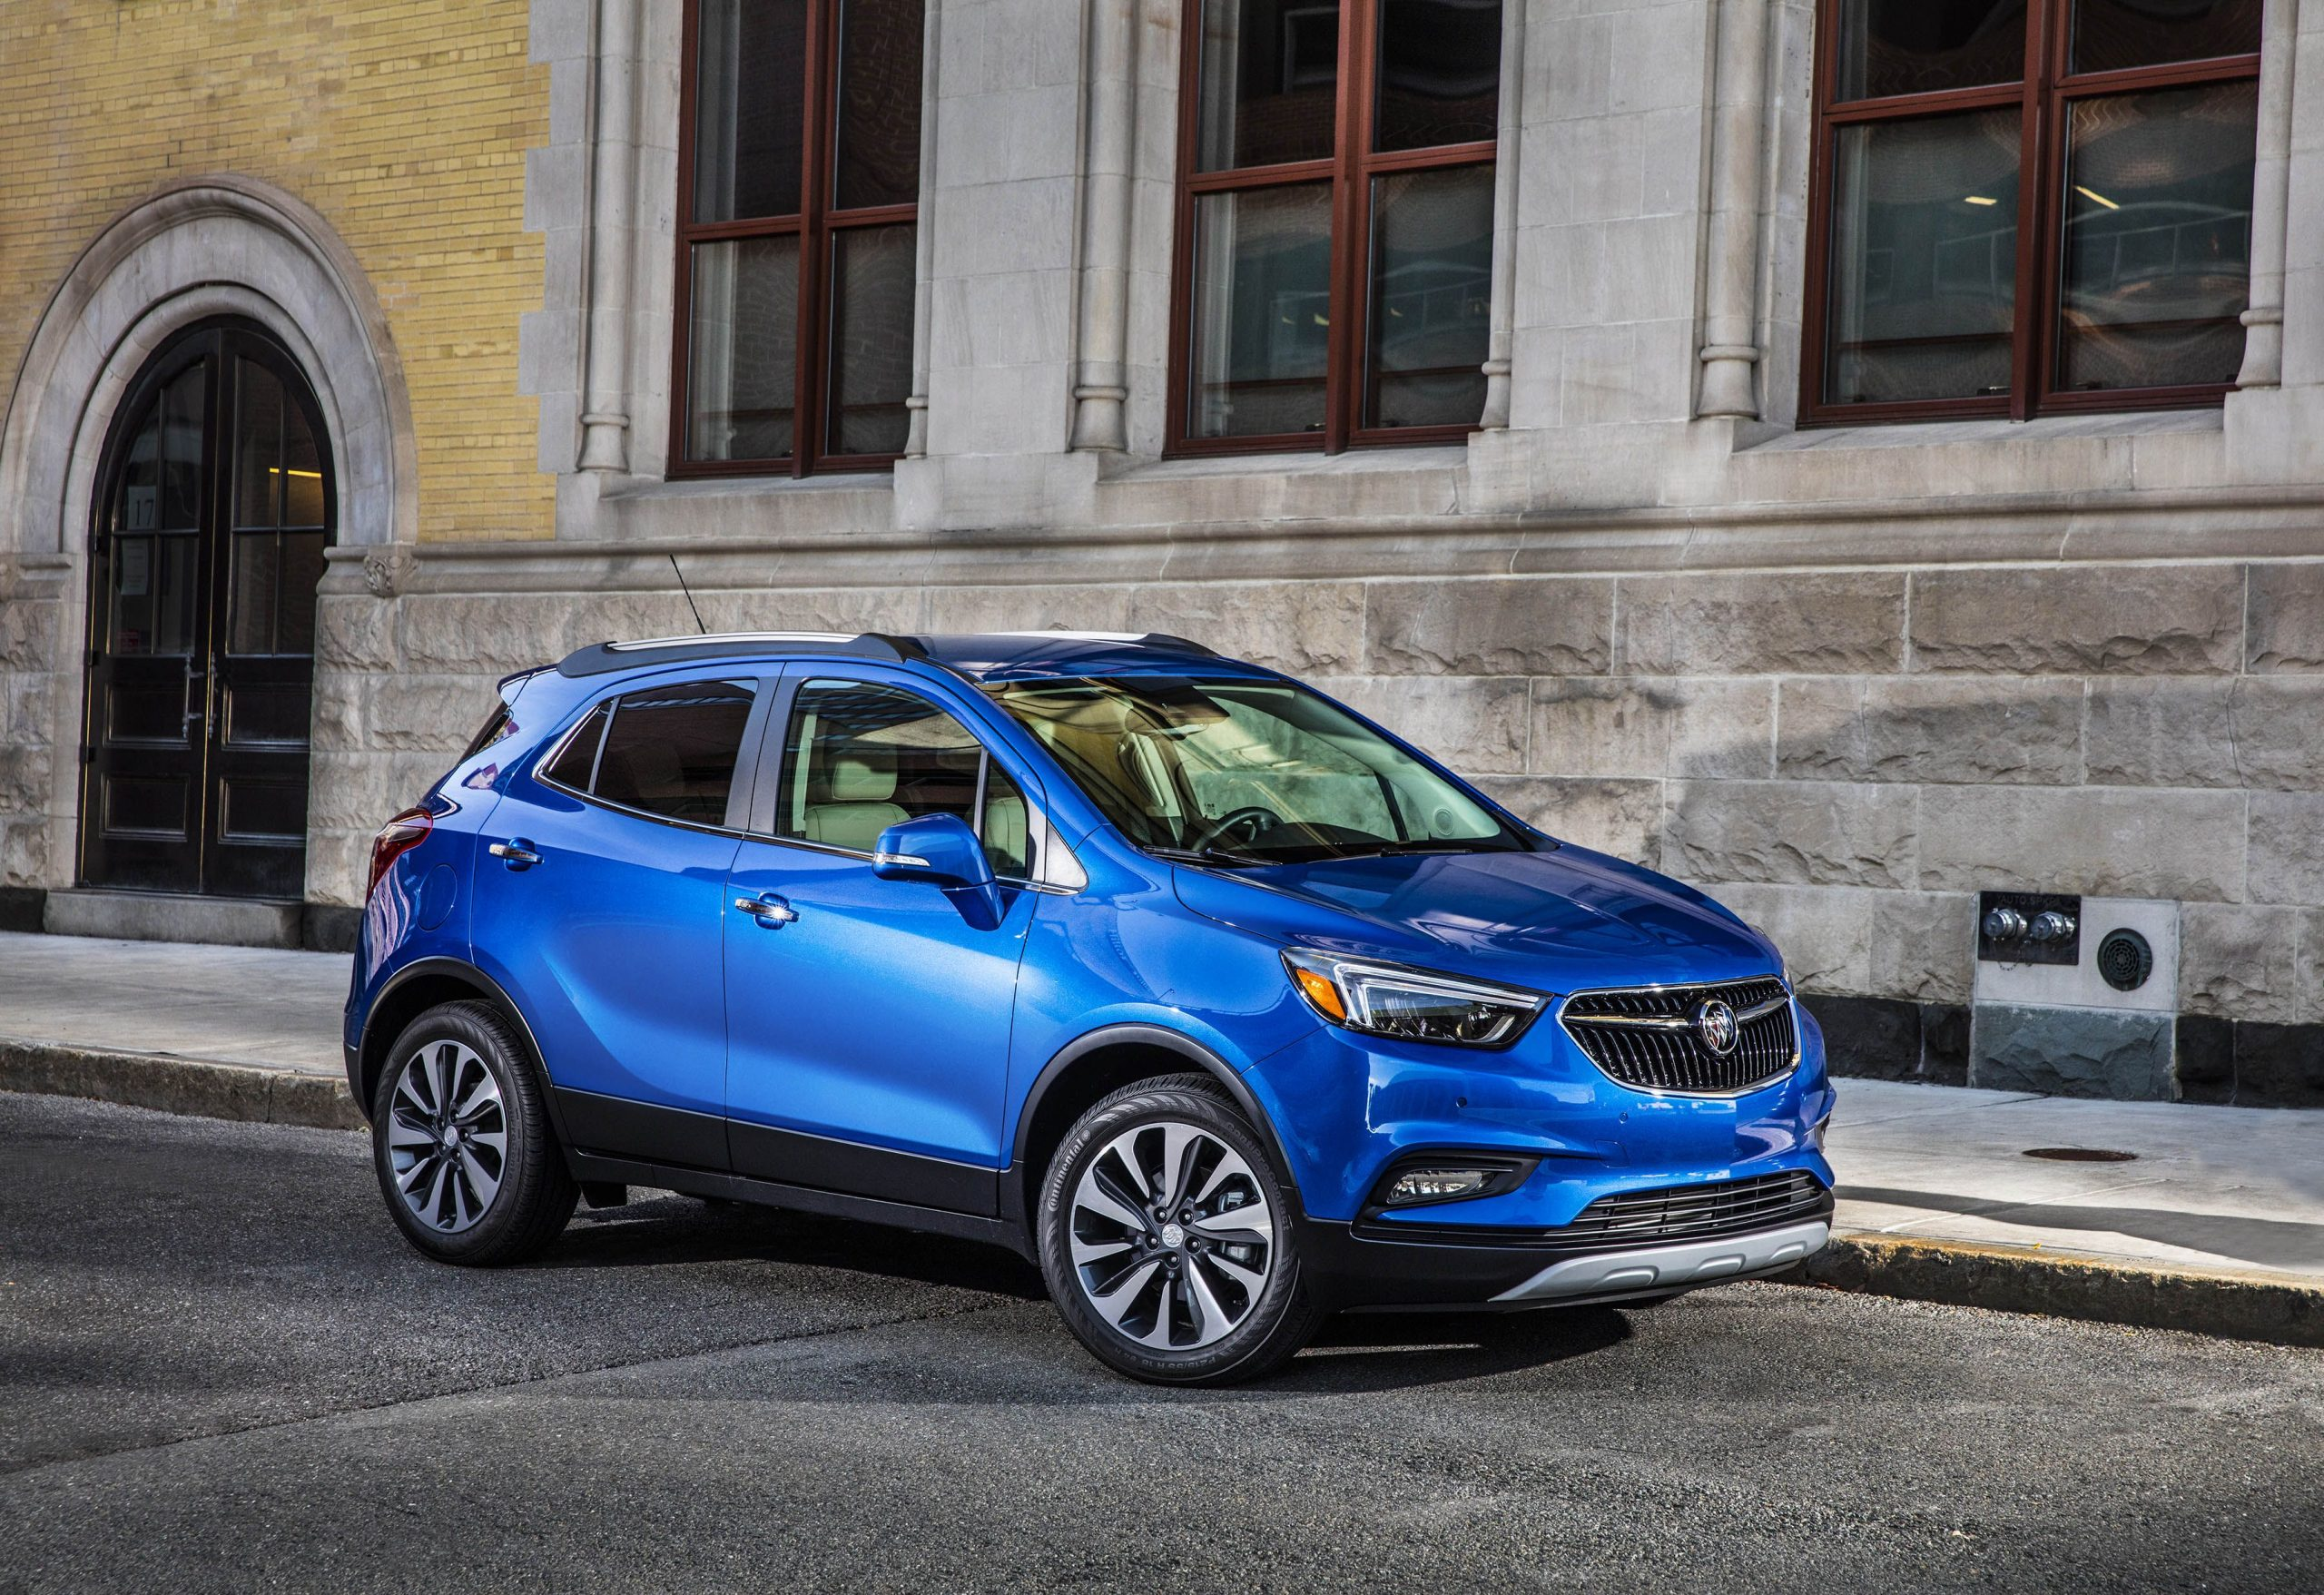 2020 Buick Encore Review, Pricing, And Specs 2022 Buick Encore Problems, Specs, Safety Rating